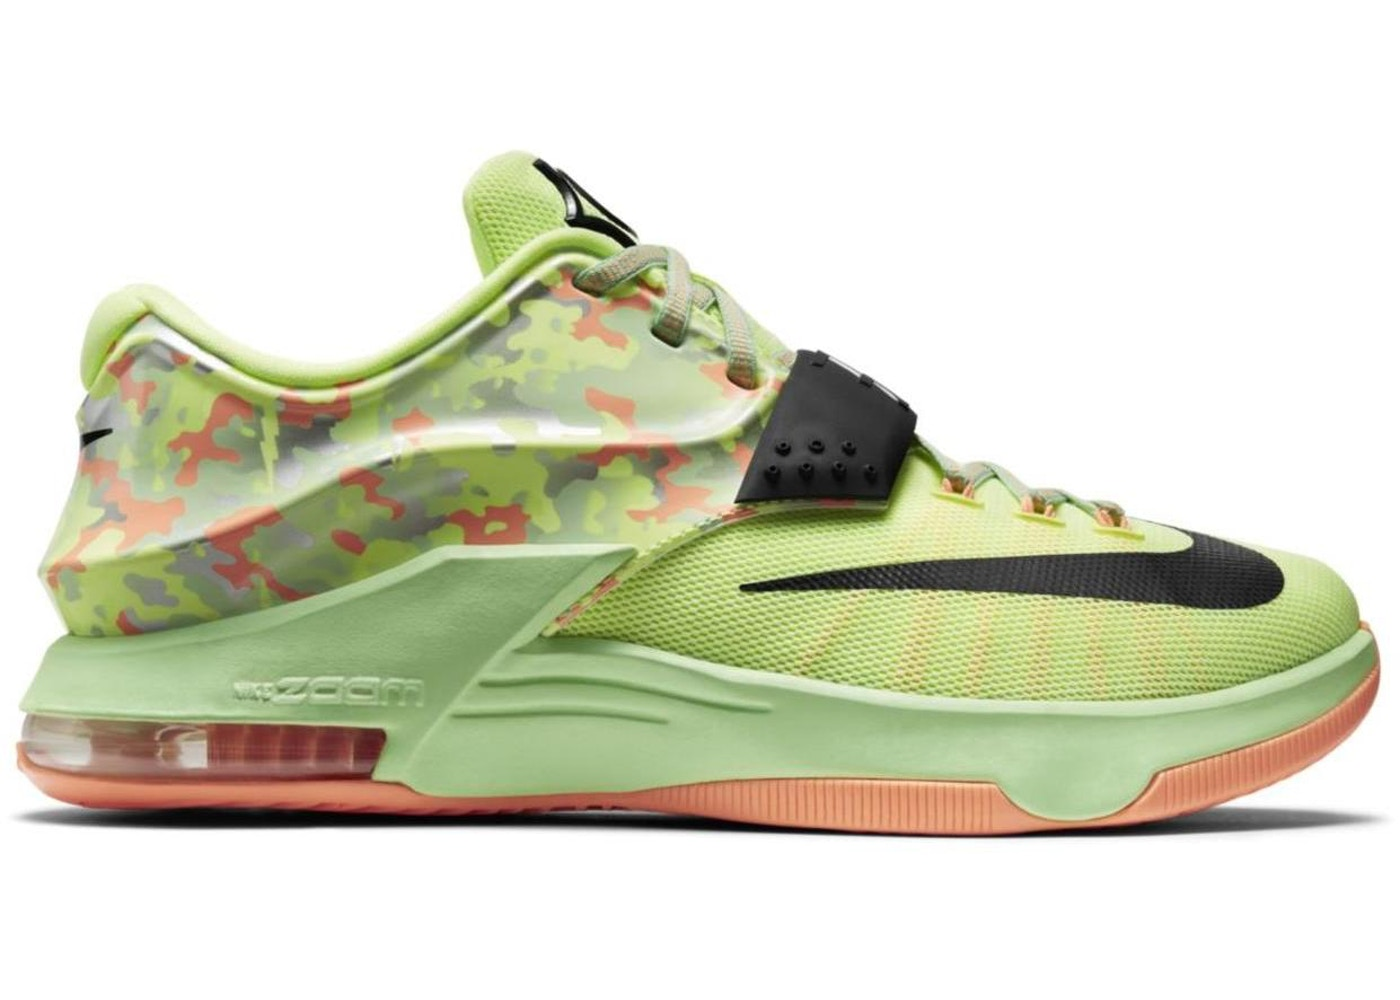 ナイキ NIKE スニーカー 【 KD 7 EASTER LIQUID LIME BLACKVAPOR GREENSUNSET GLOW 】 メンズ